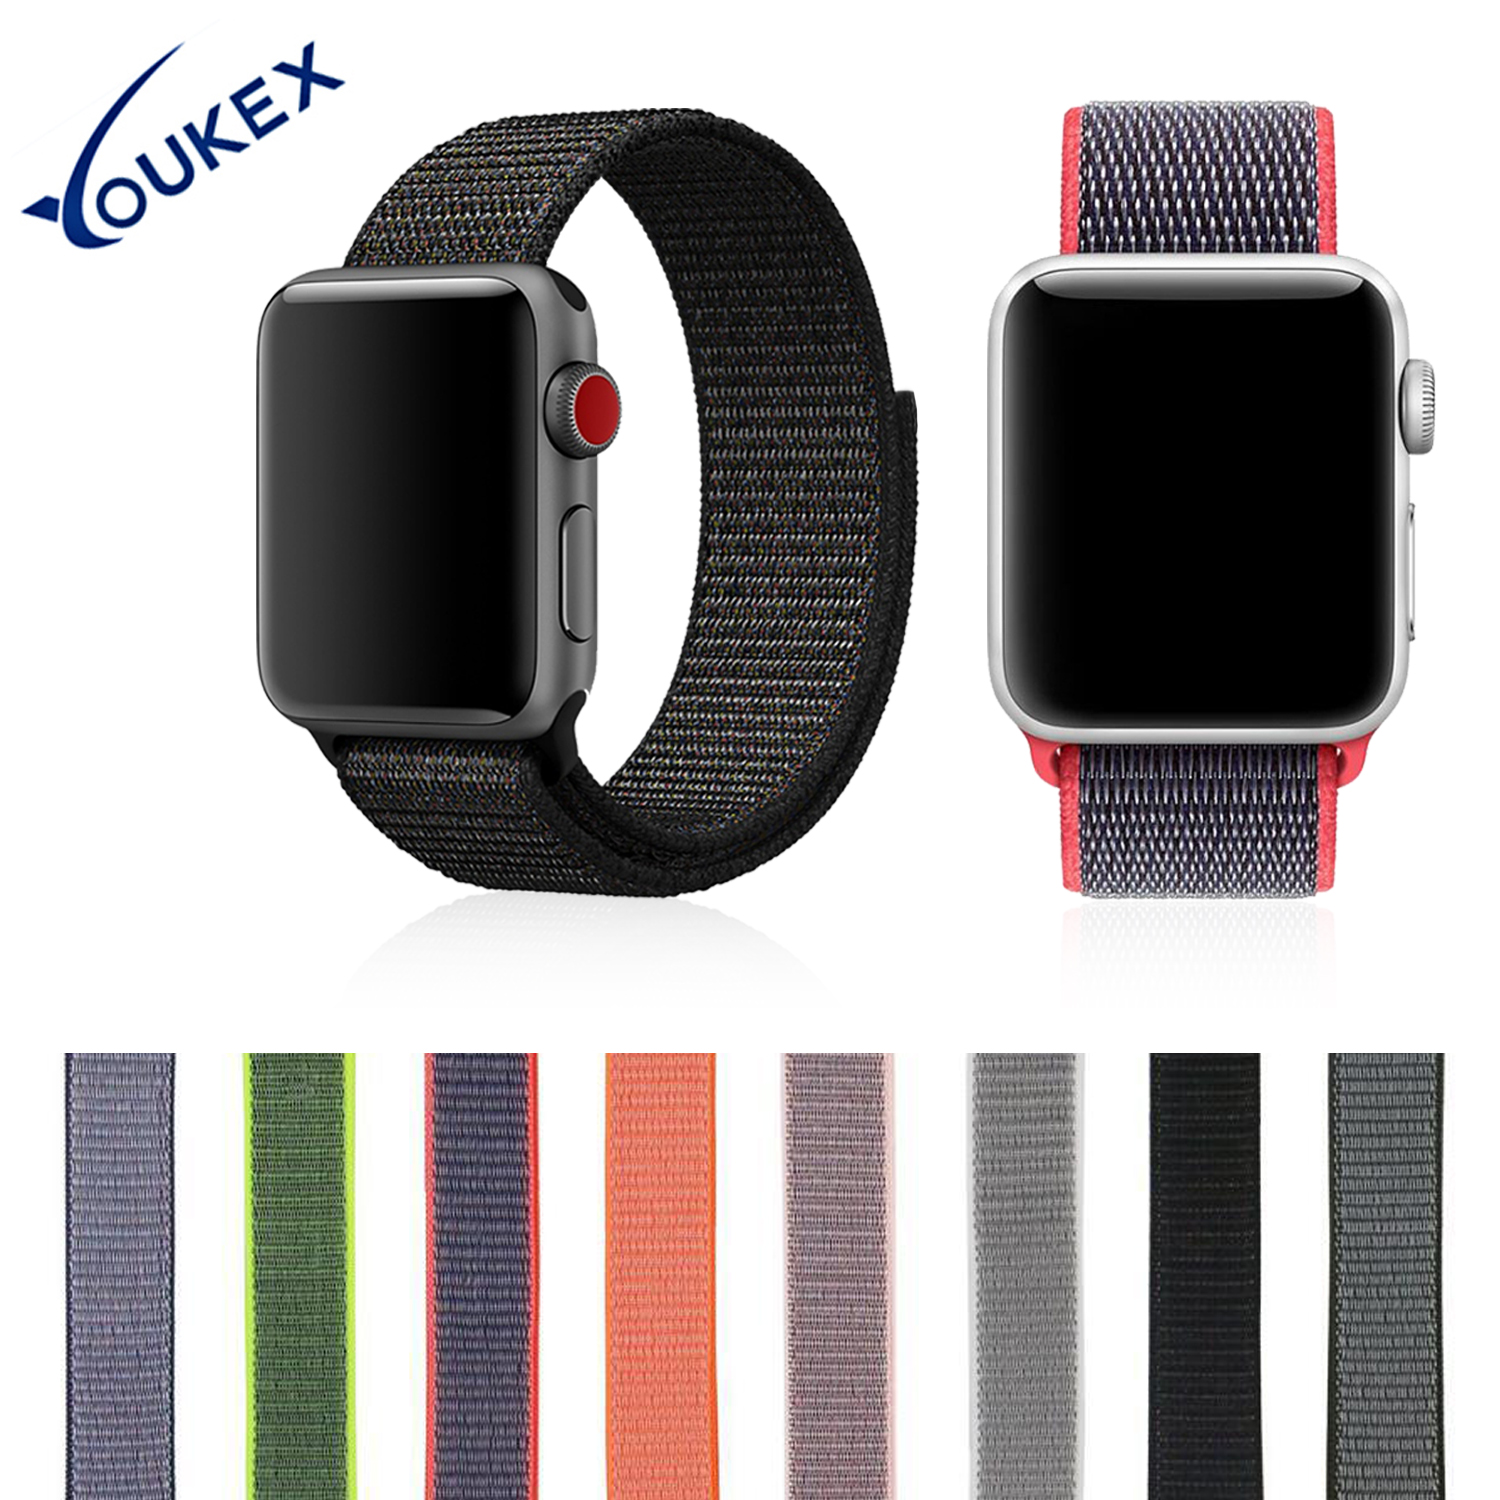 YOUKEX Nylon Sport Band for Apple Watch 38mm 42mm Replacement Wrist Soft Breathable Band Bracelet For iwatch Series 1 & 2 & 3 youkex silicone sport band for apple watch 38mm 42mm replacement sport bracelet wrist strap for iwatch series 1